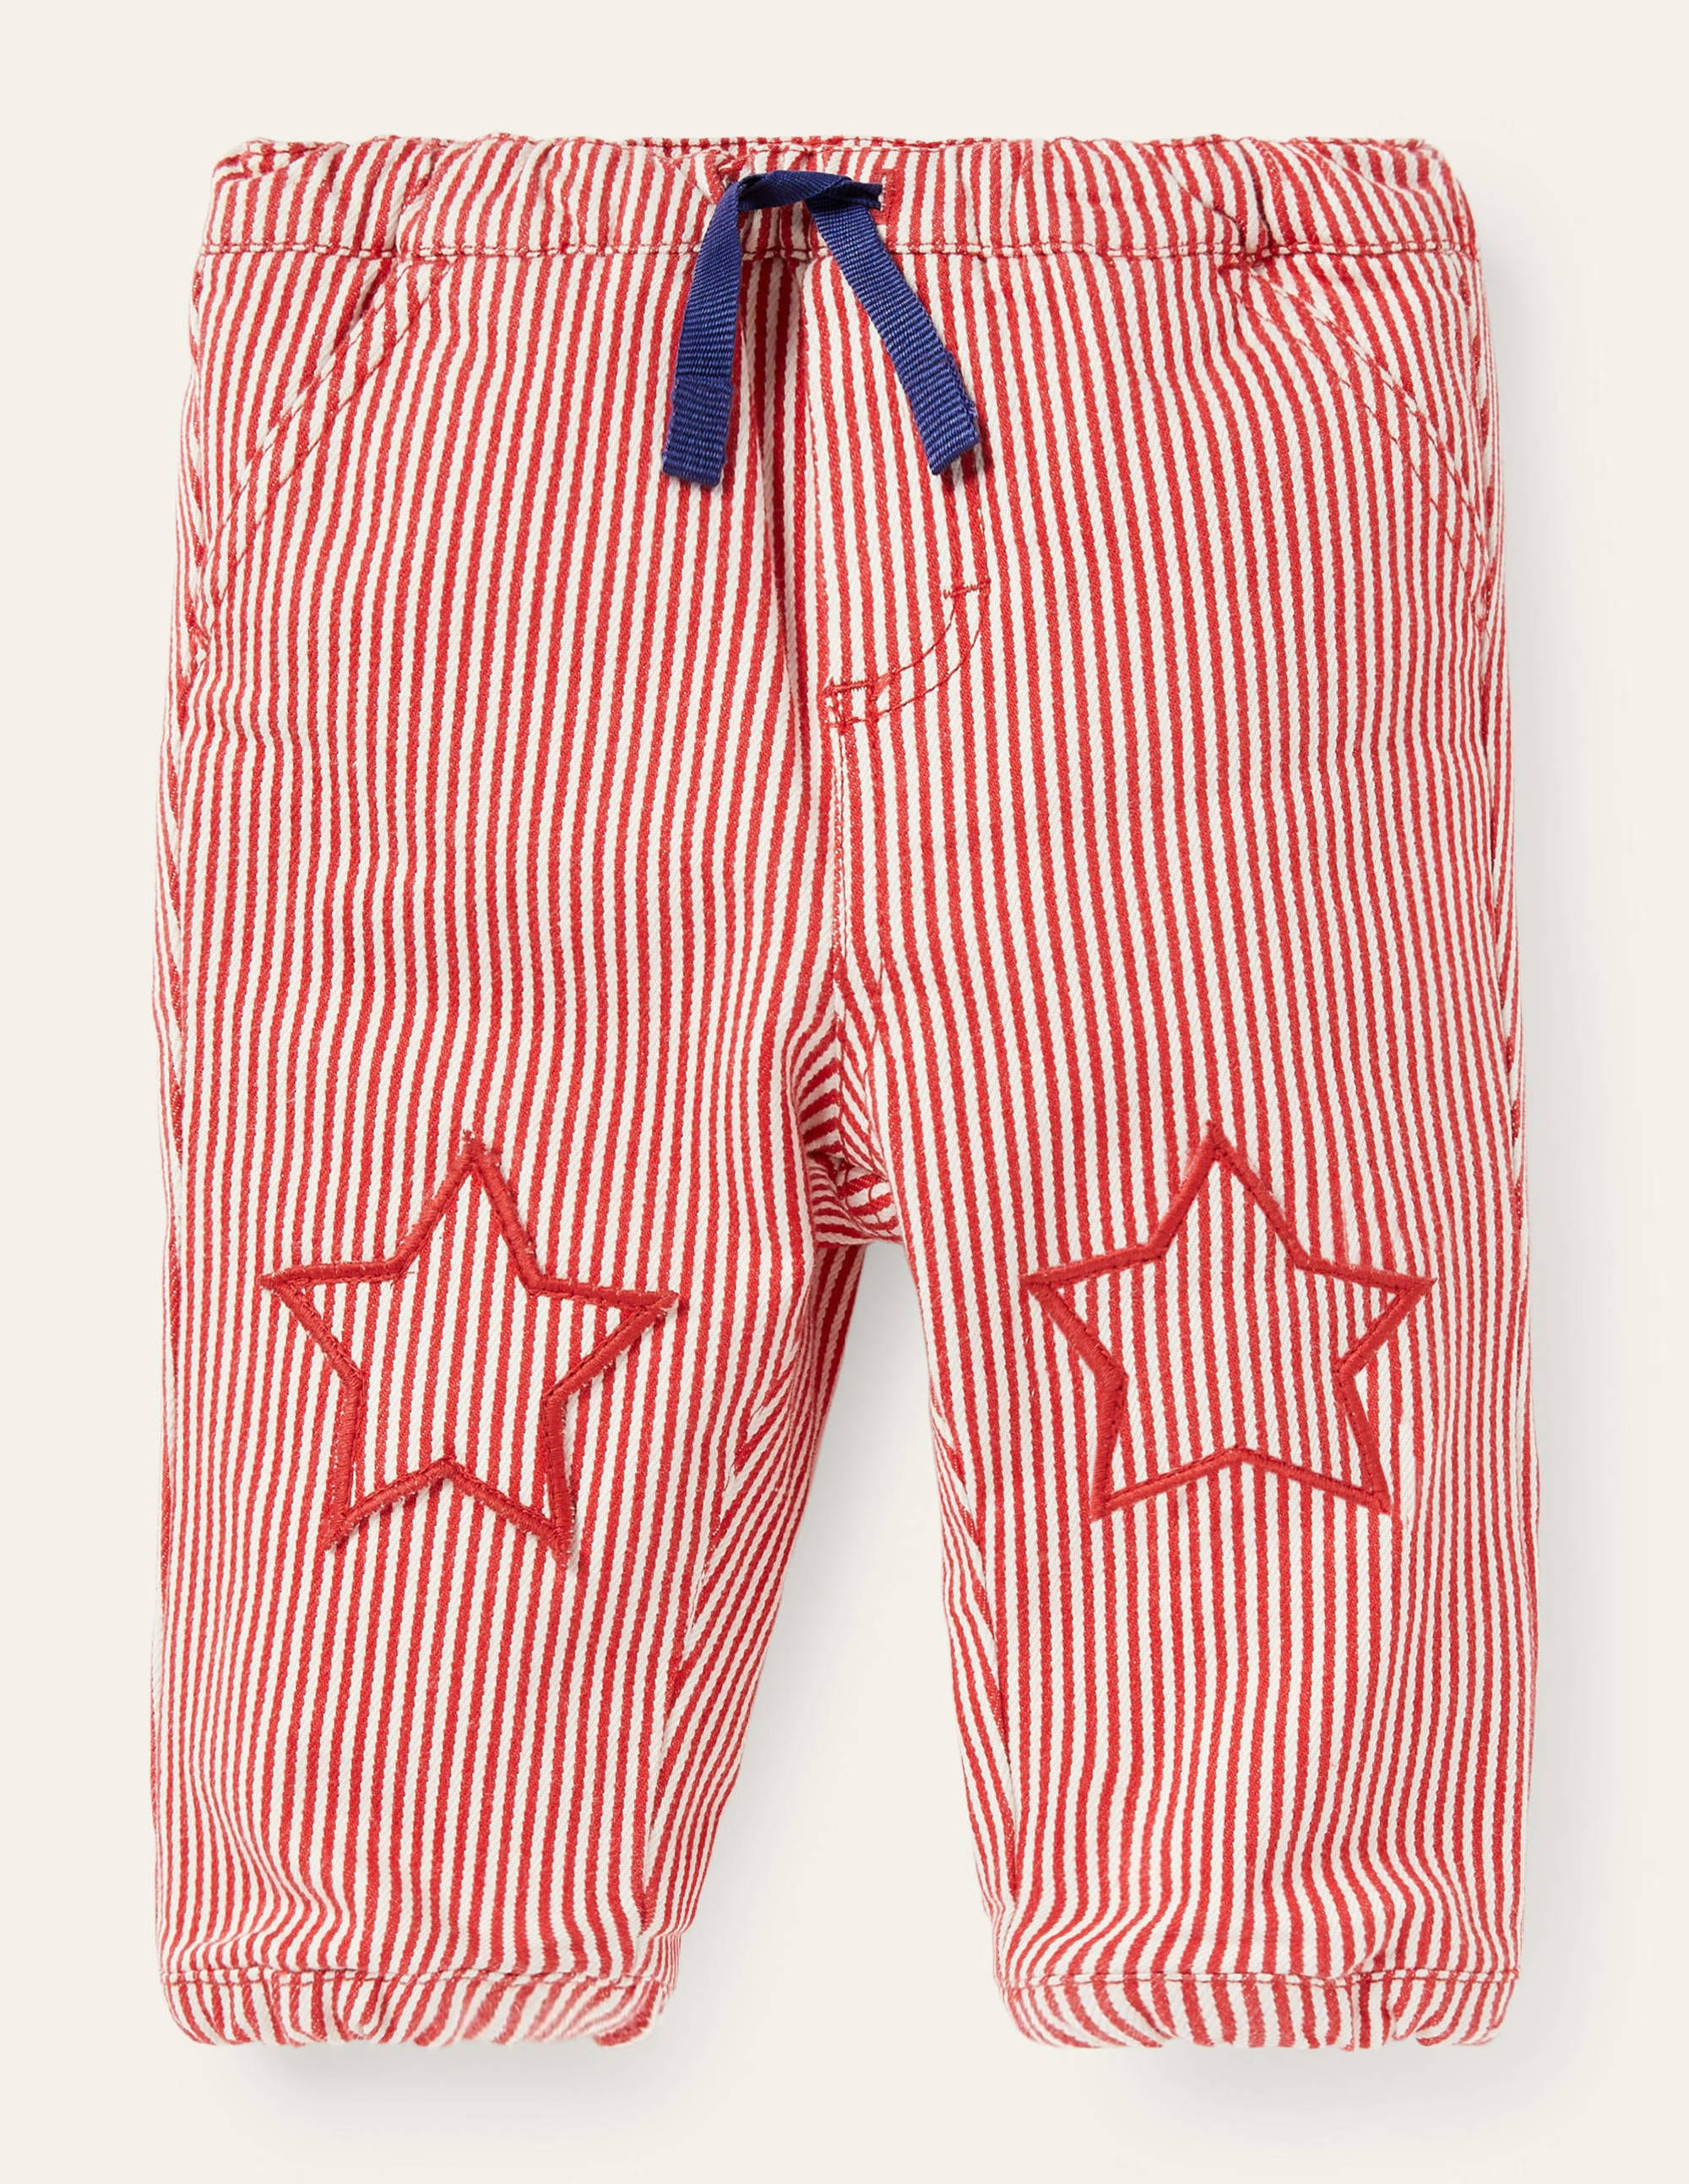 Boden Cosy Lined Bottoms - Cherry Tomato Ticking